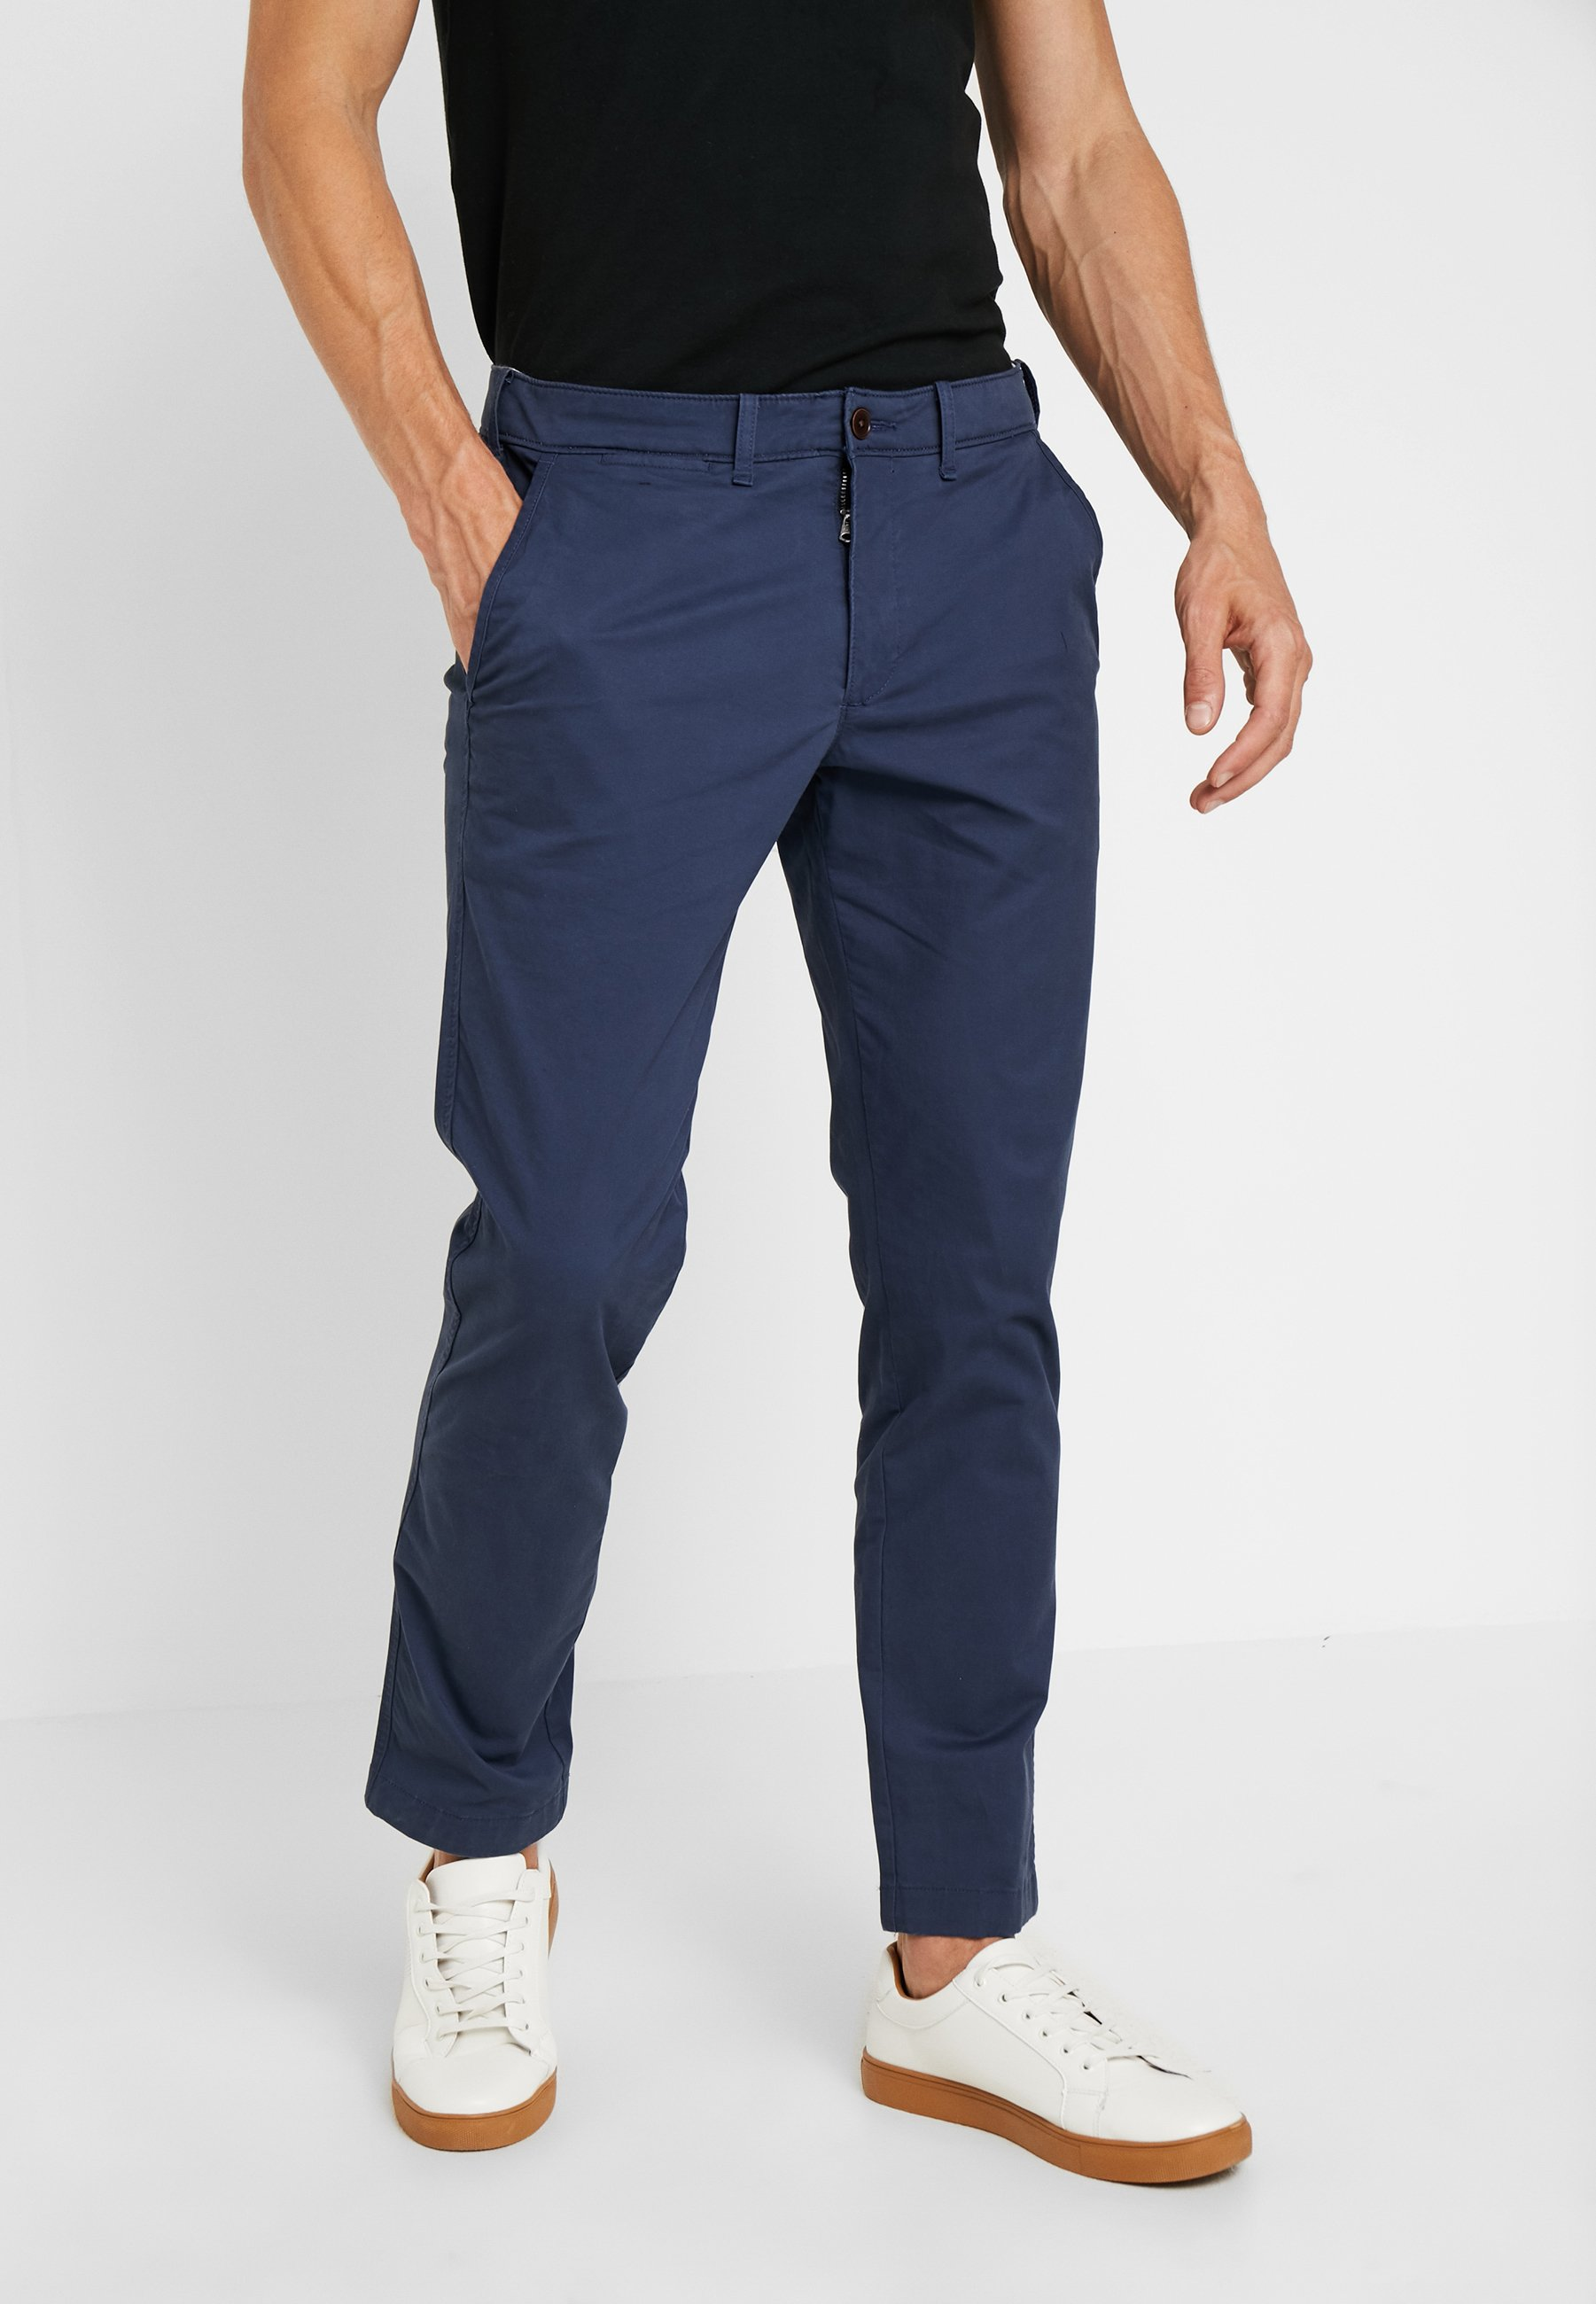 Abercrombieamp; Fitch Navy Abercrombieamp; Navy Fitch SkinnyChino SkinnyChino Fitch Navy SkinnyChino Abercrombieamp; exdCWrBo